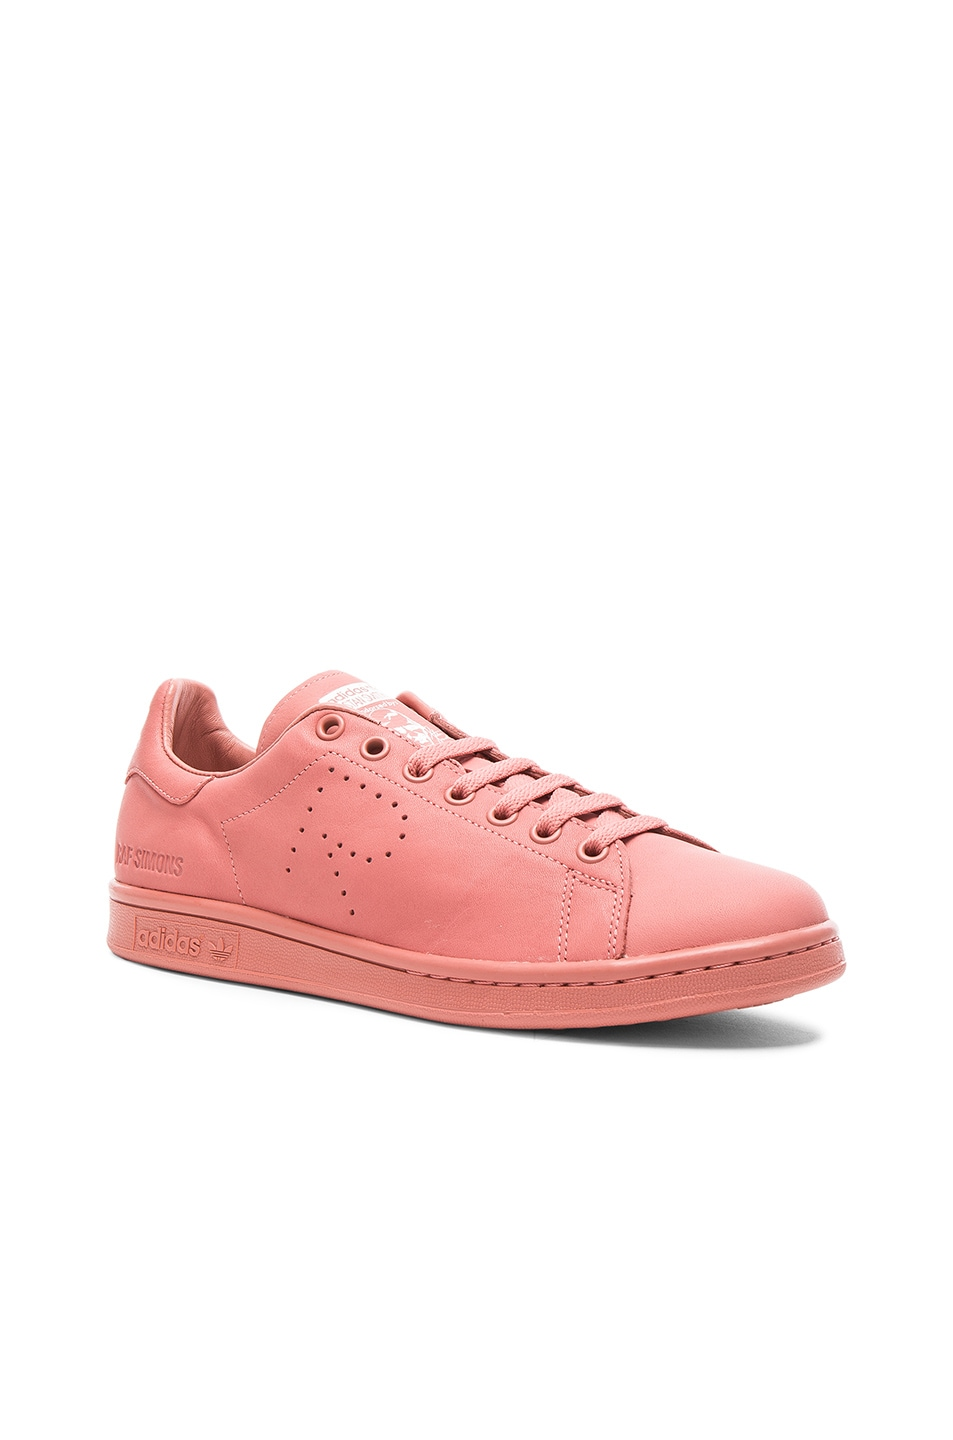 free shipping cf5d6 dfcf3 Image 1 of Raf Simons x Adidas Stan Smith in Ash Pink